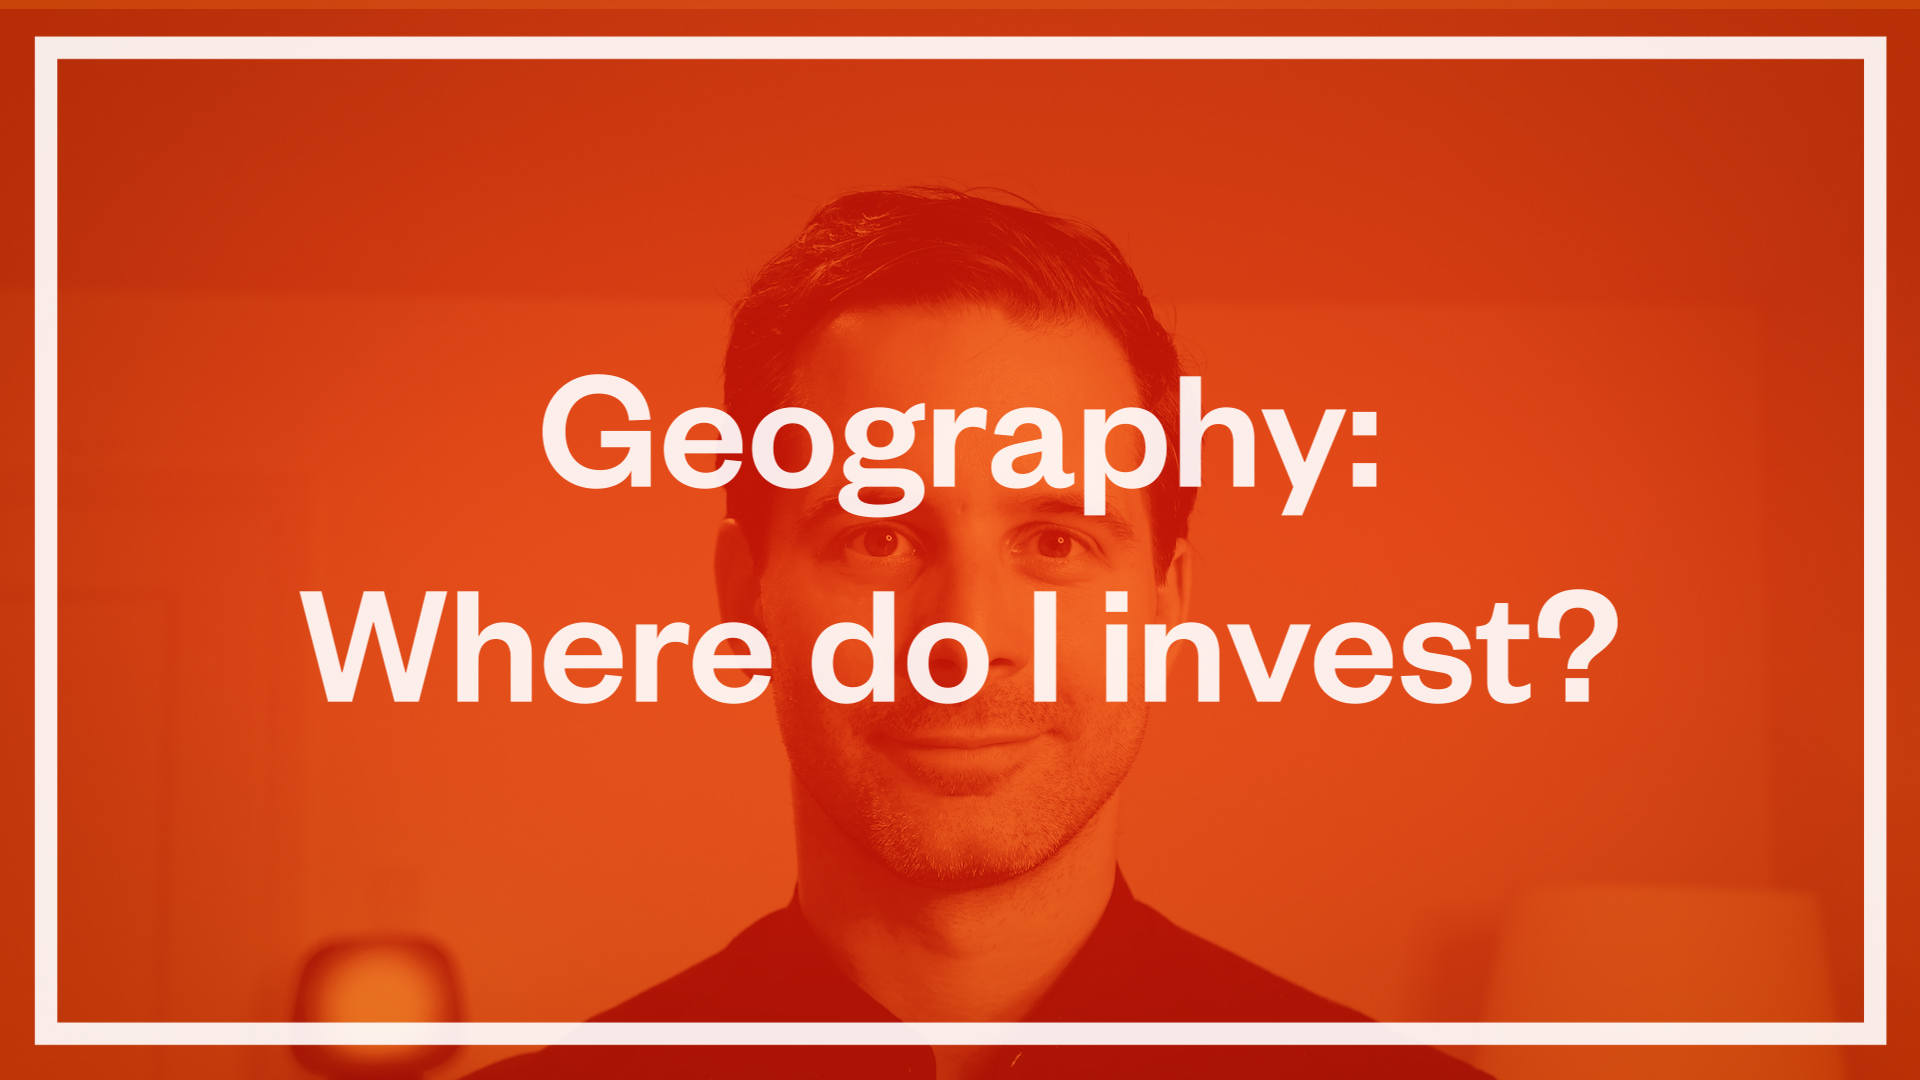 Geography: Where do I invest?